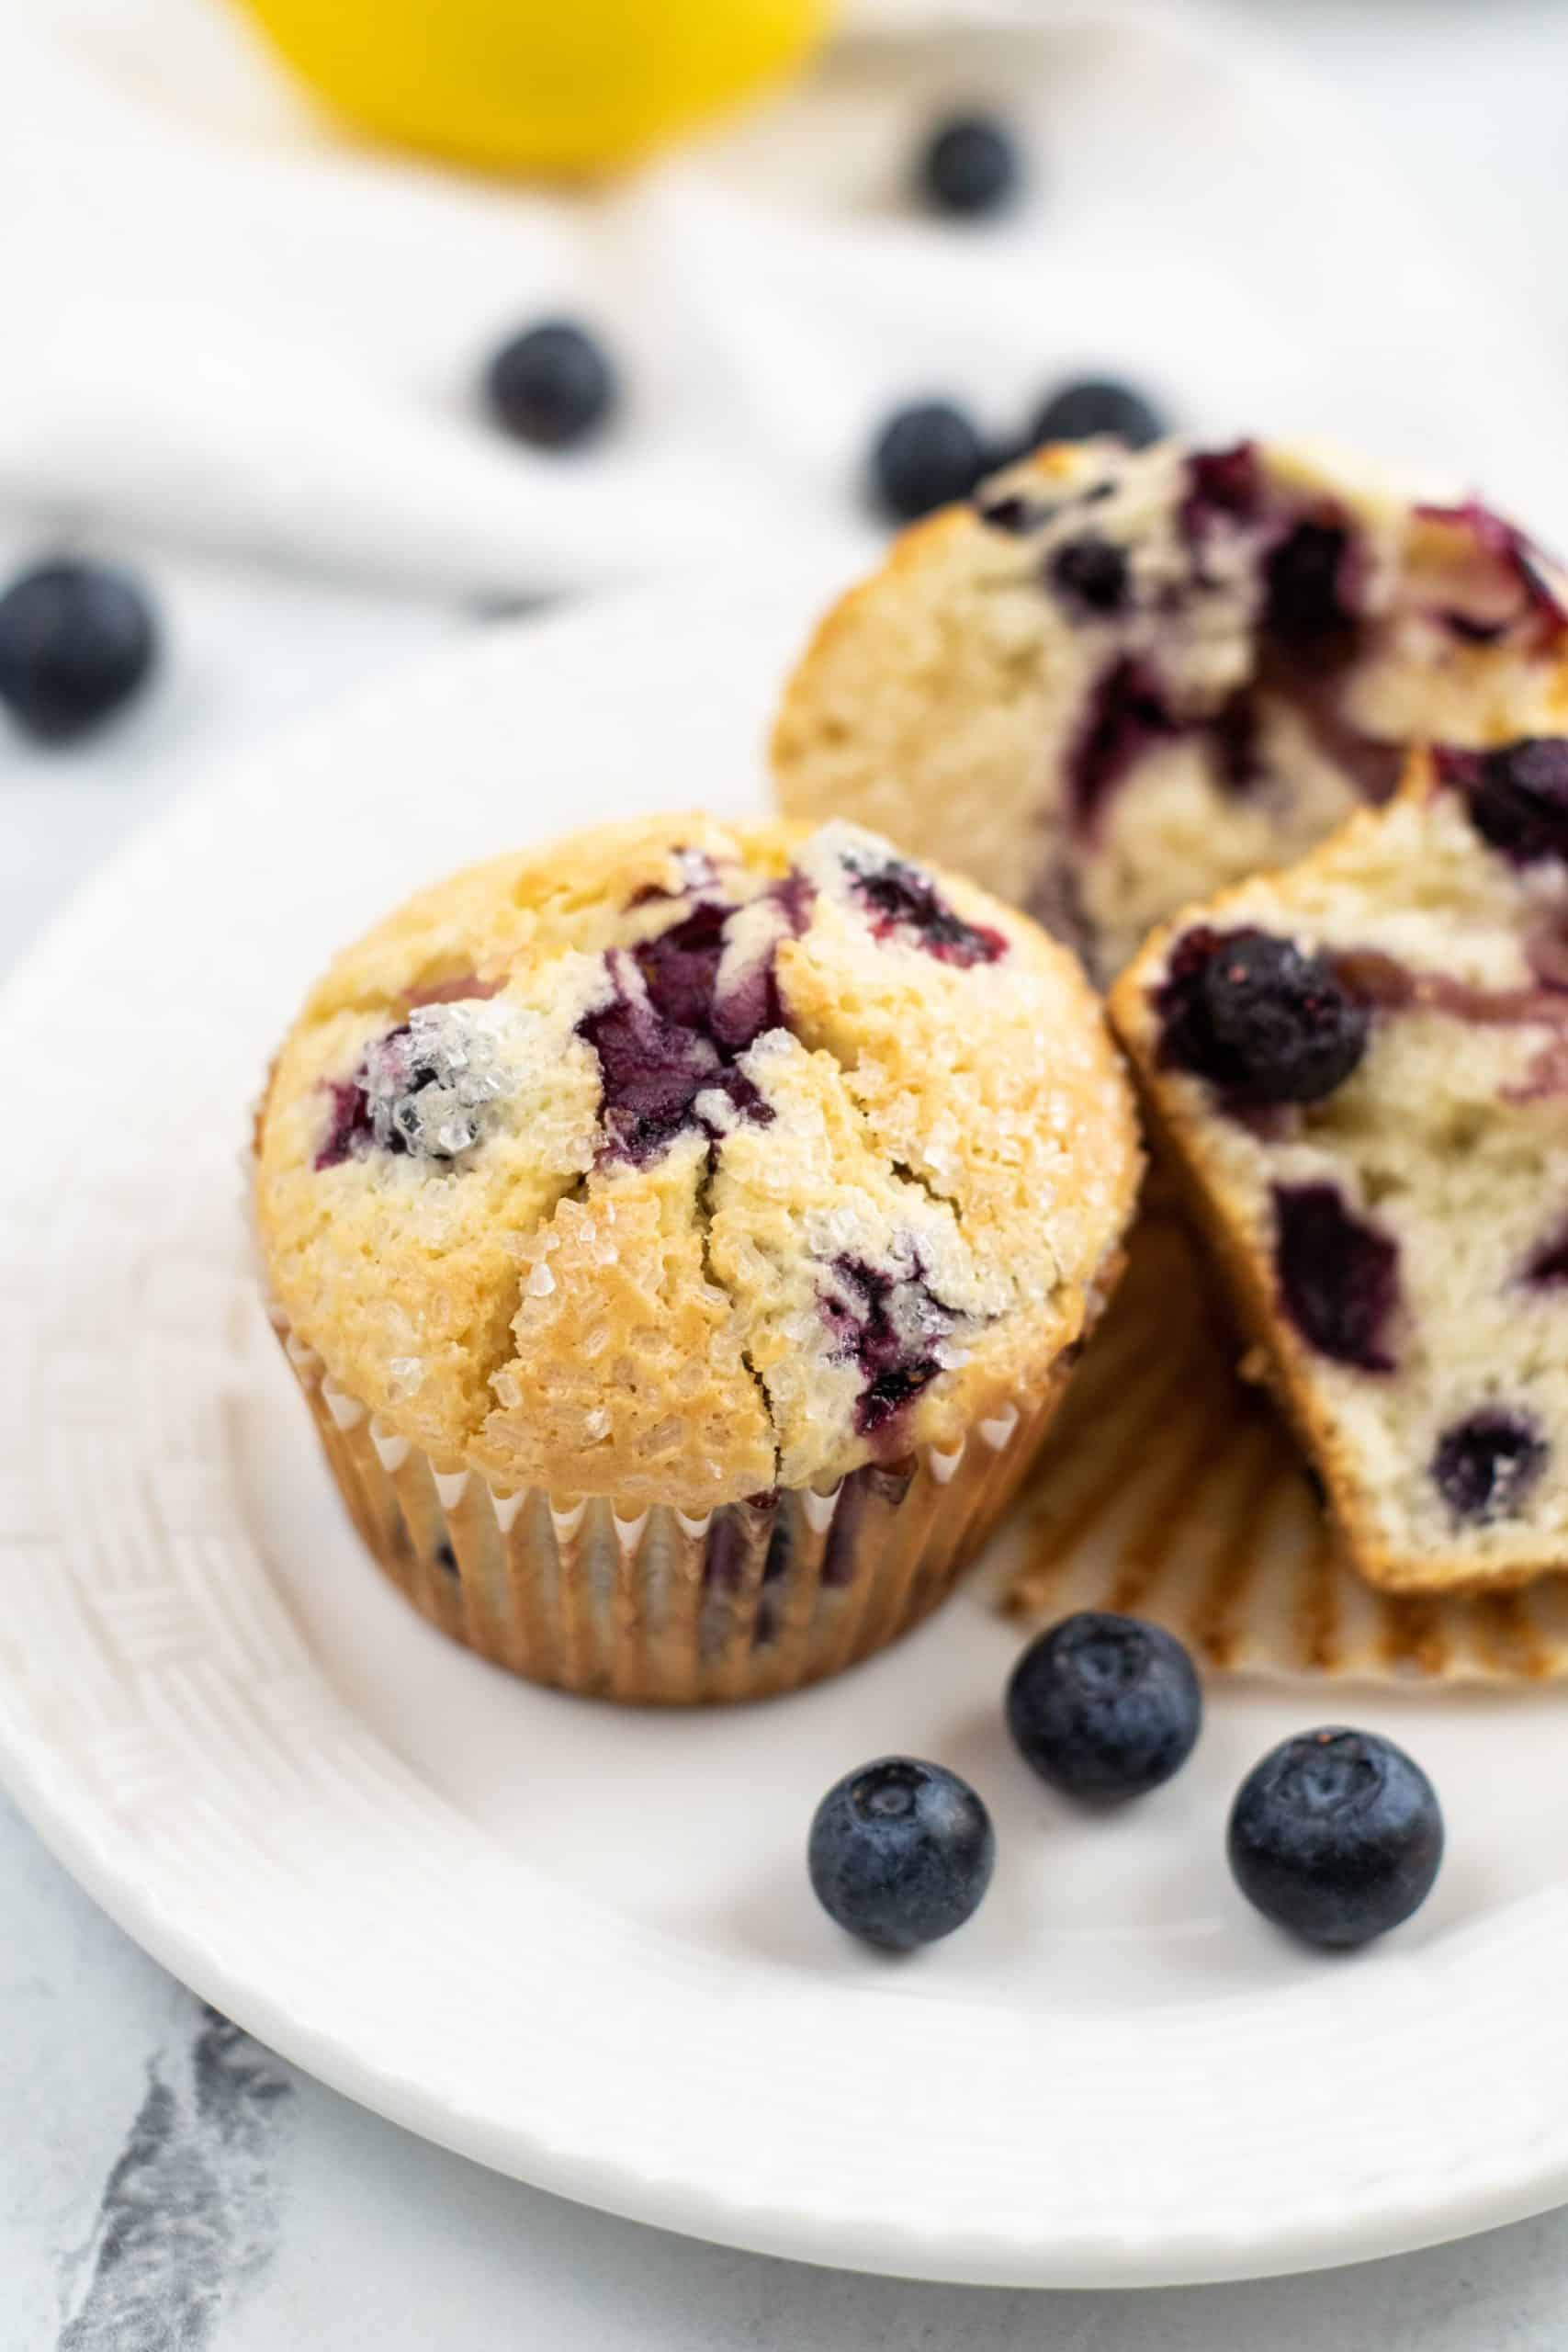 Close up on the blueberry muffin with blueberries on side.